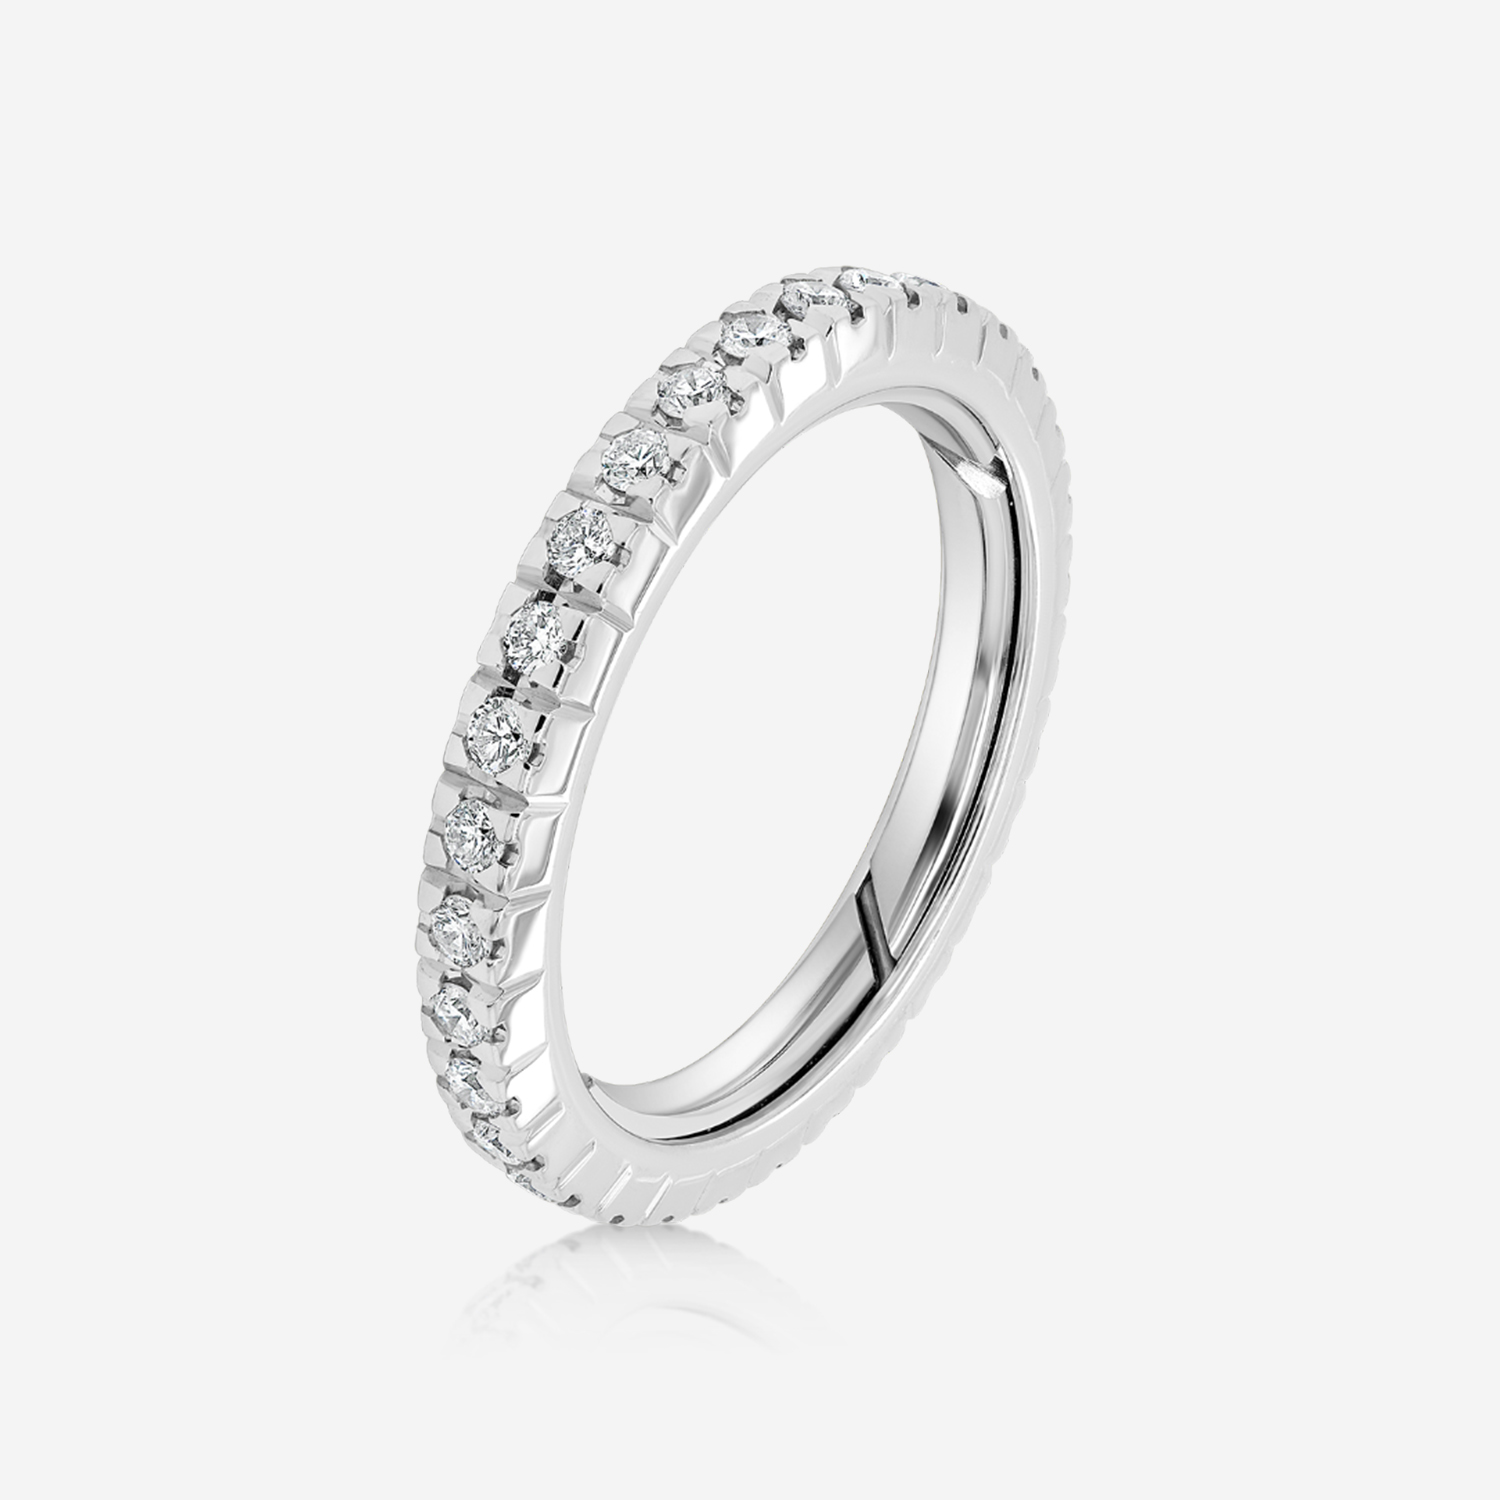 Diamond Rings Gold ring with diamonds White Diamonds